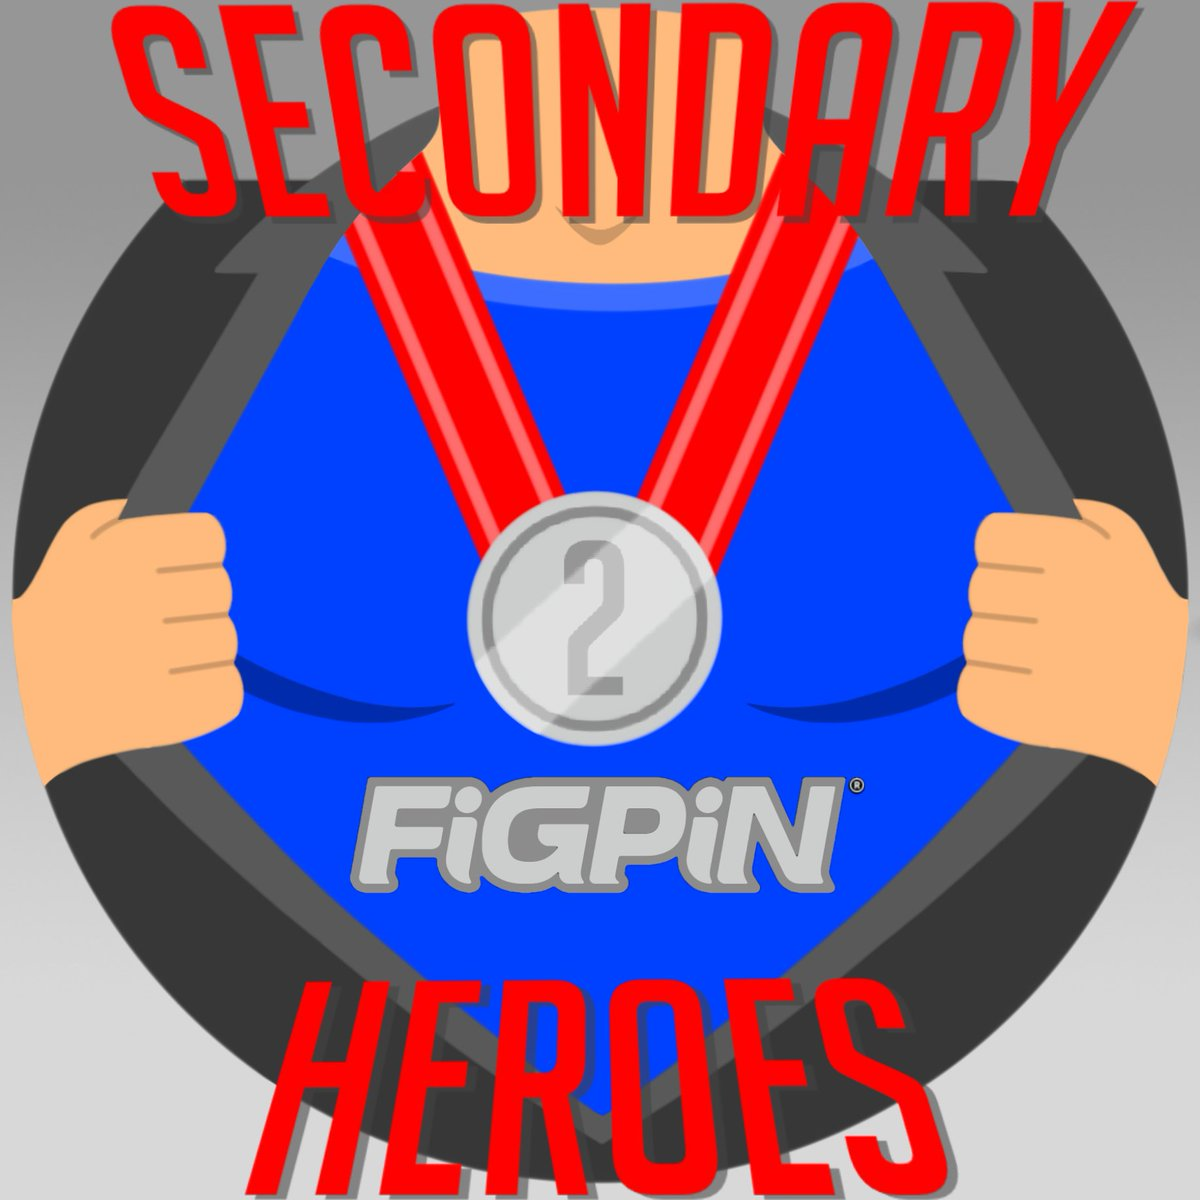 NEW EPISODE  Secondary Heroes #Podcast Episode 38: Interview With The FiGPiN Founders  We're joined by @FiGPiNofficial founders Dan Williams, Amado Batour, and Erik Haldi to hear a ton of cool stories about everything #FiGPiN   https:// soundcloud.com/secondaryheroe s/secondary-heroes-podcast-episode-38-interview-with-the-figpin-founders  …    https:// podcasts.apple.com/us/podcast/sec ondary-heroes-podcast/id145517394  … <br>http://pic.twitter.com/eXD6YepWDA